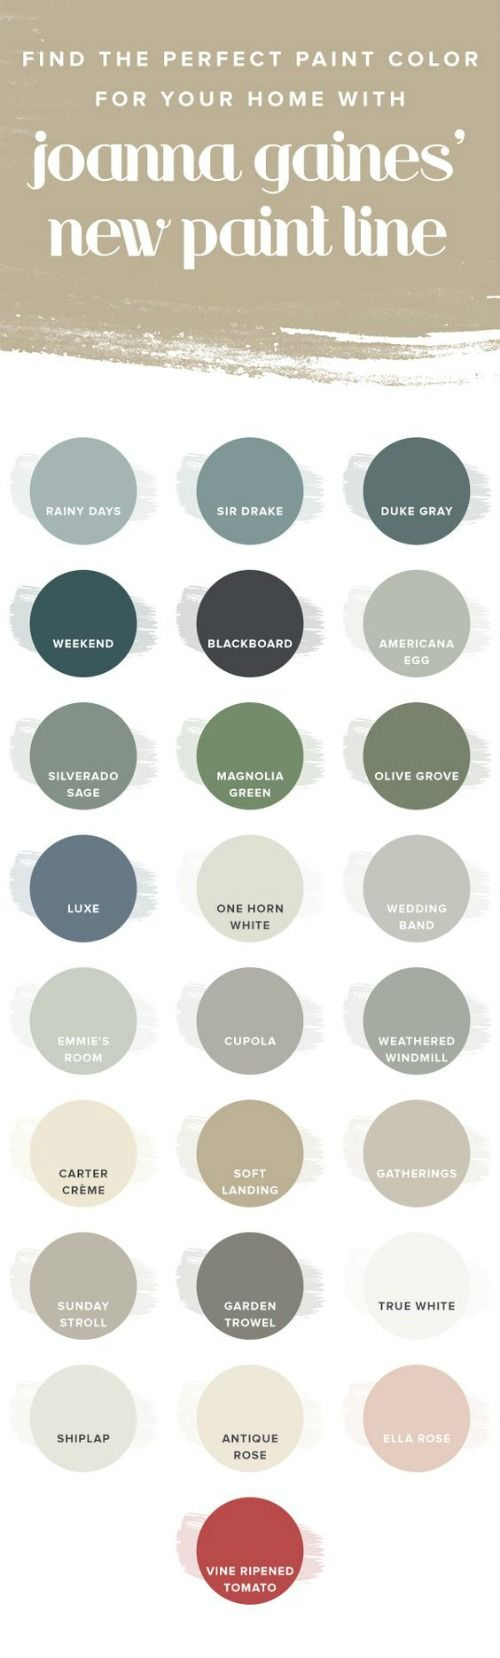 Magnolia Market has a Paint Line – a color for every need. Inspire Your Joanna Gaines with DIY Fixer Upper Ideas on Frugal Coupon Living.  #fixerupper #homedecor #upcycle #homecrafts #farmhousedecor #farmhouse #JoannaGaines #JoannaGainesideas #paint #paintcolors #homepaintideas